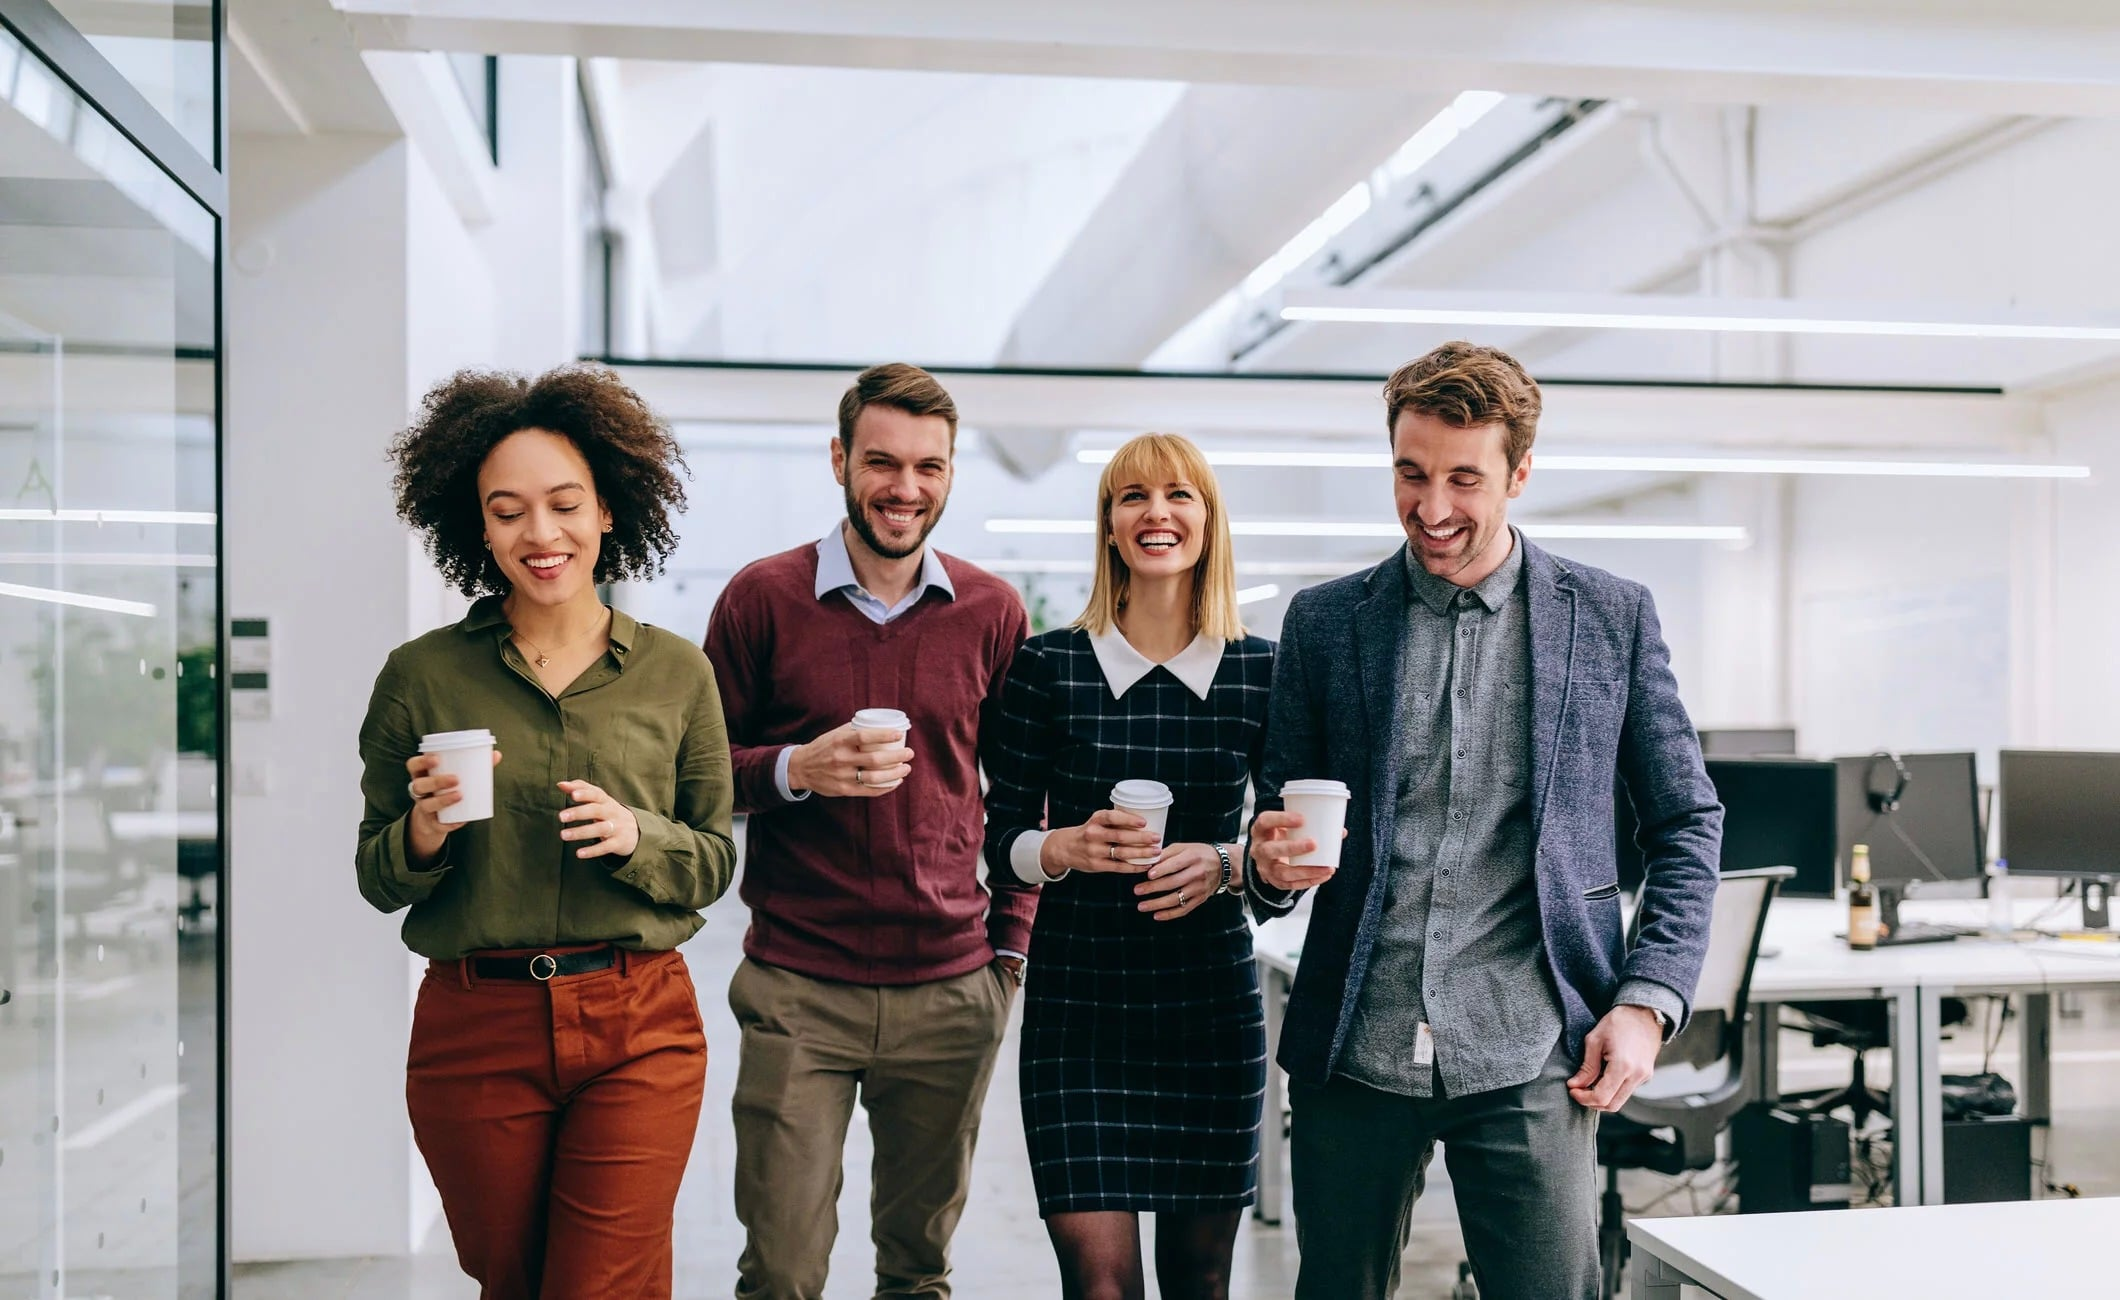 Exploring The Relationship Between Employee Engagement And Employee Experience